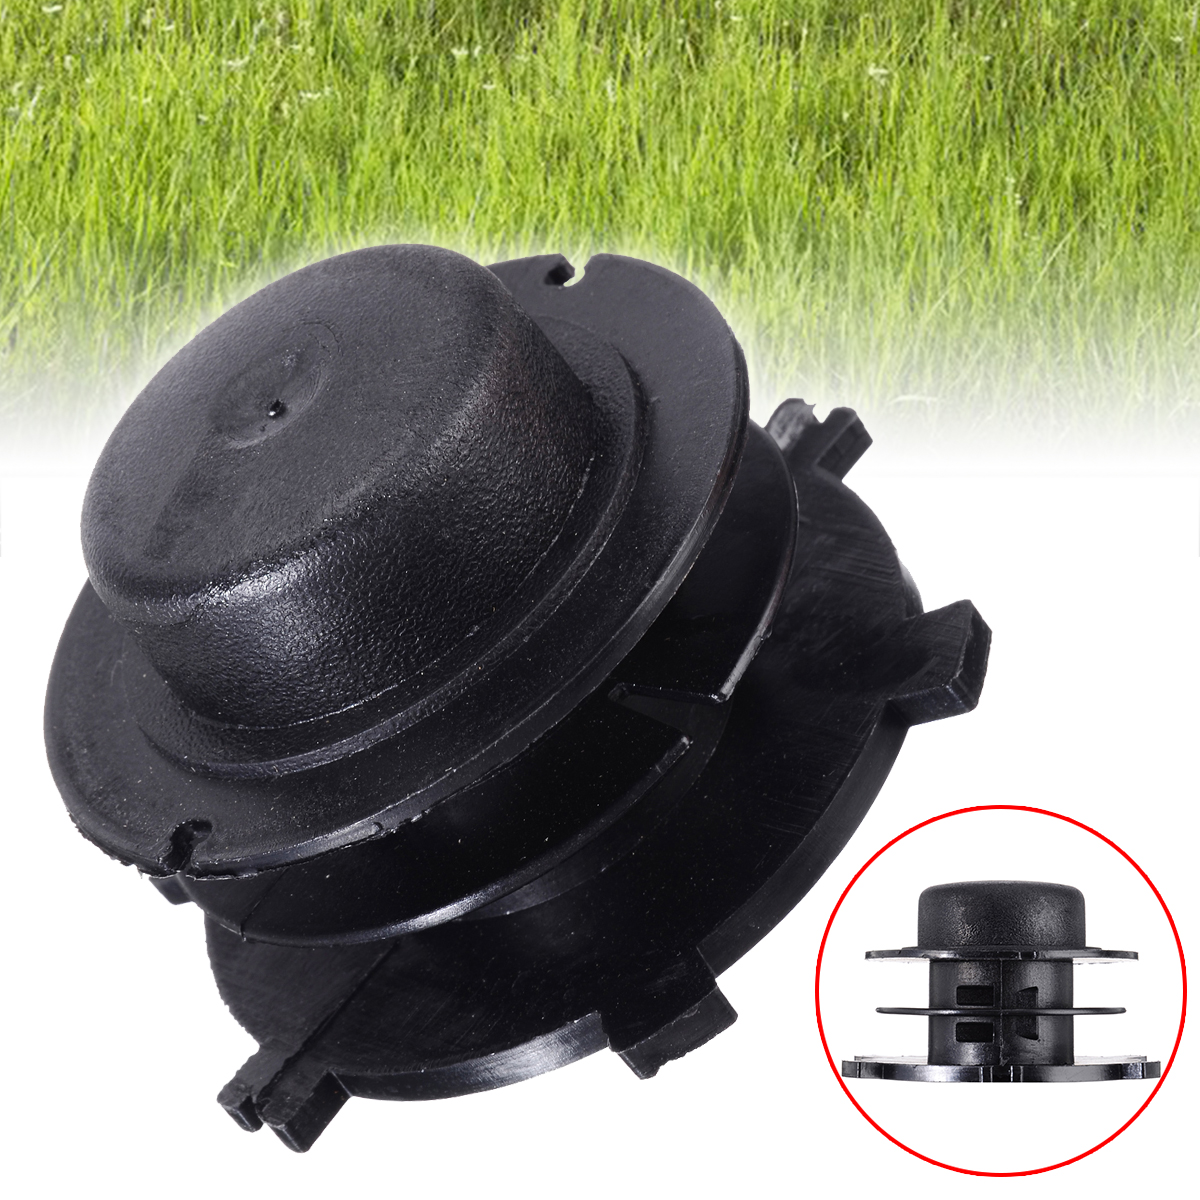 Black Trimmer Head Spool Cover Replace For Autocut 25-2 Replace 4002-713-3017